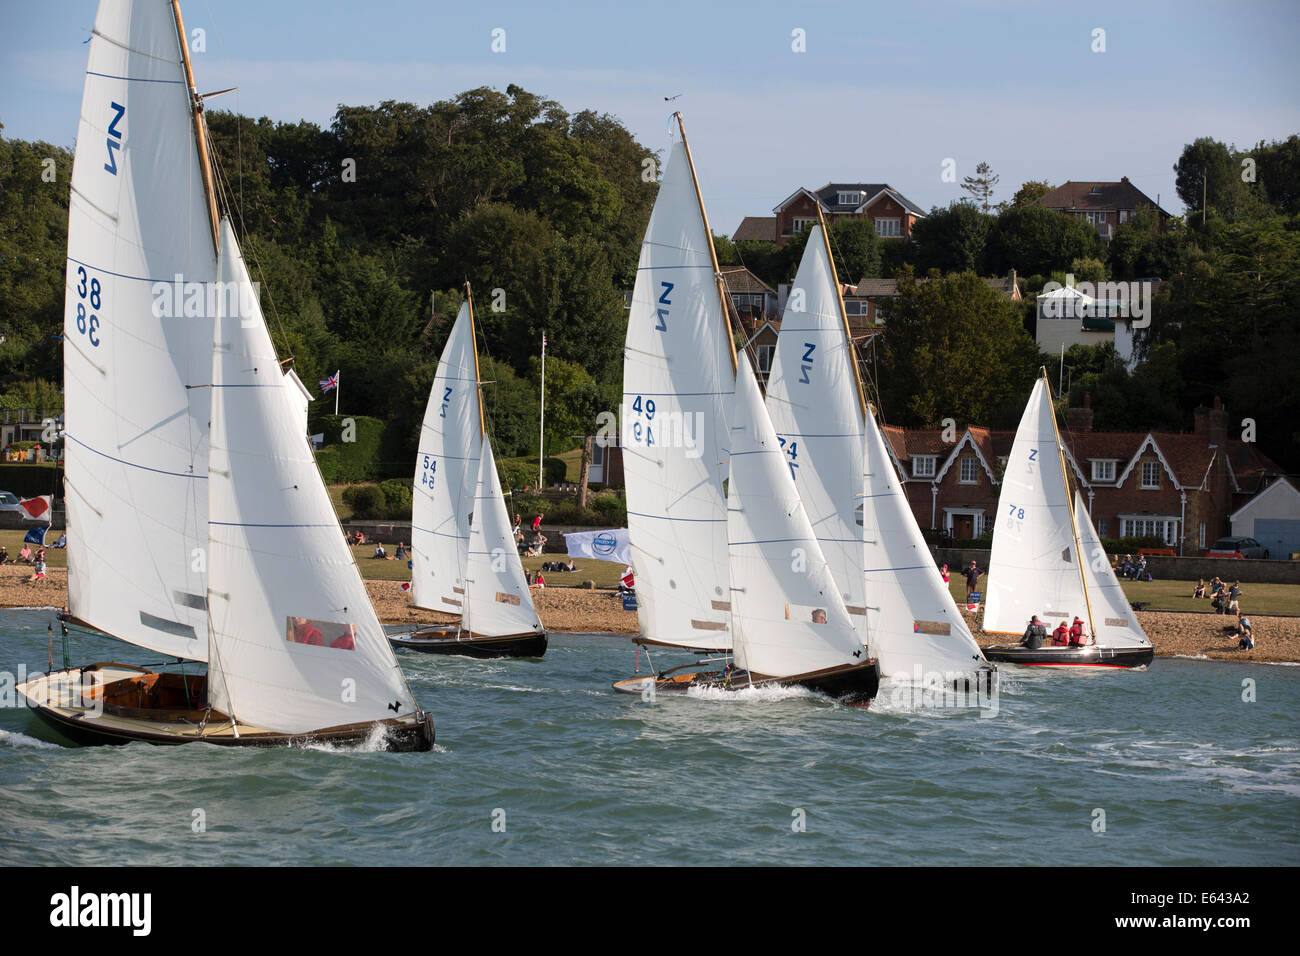 victory class keelboats racing at aberdeen asset management cowes week 2014 - Stock Image